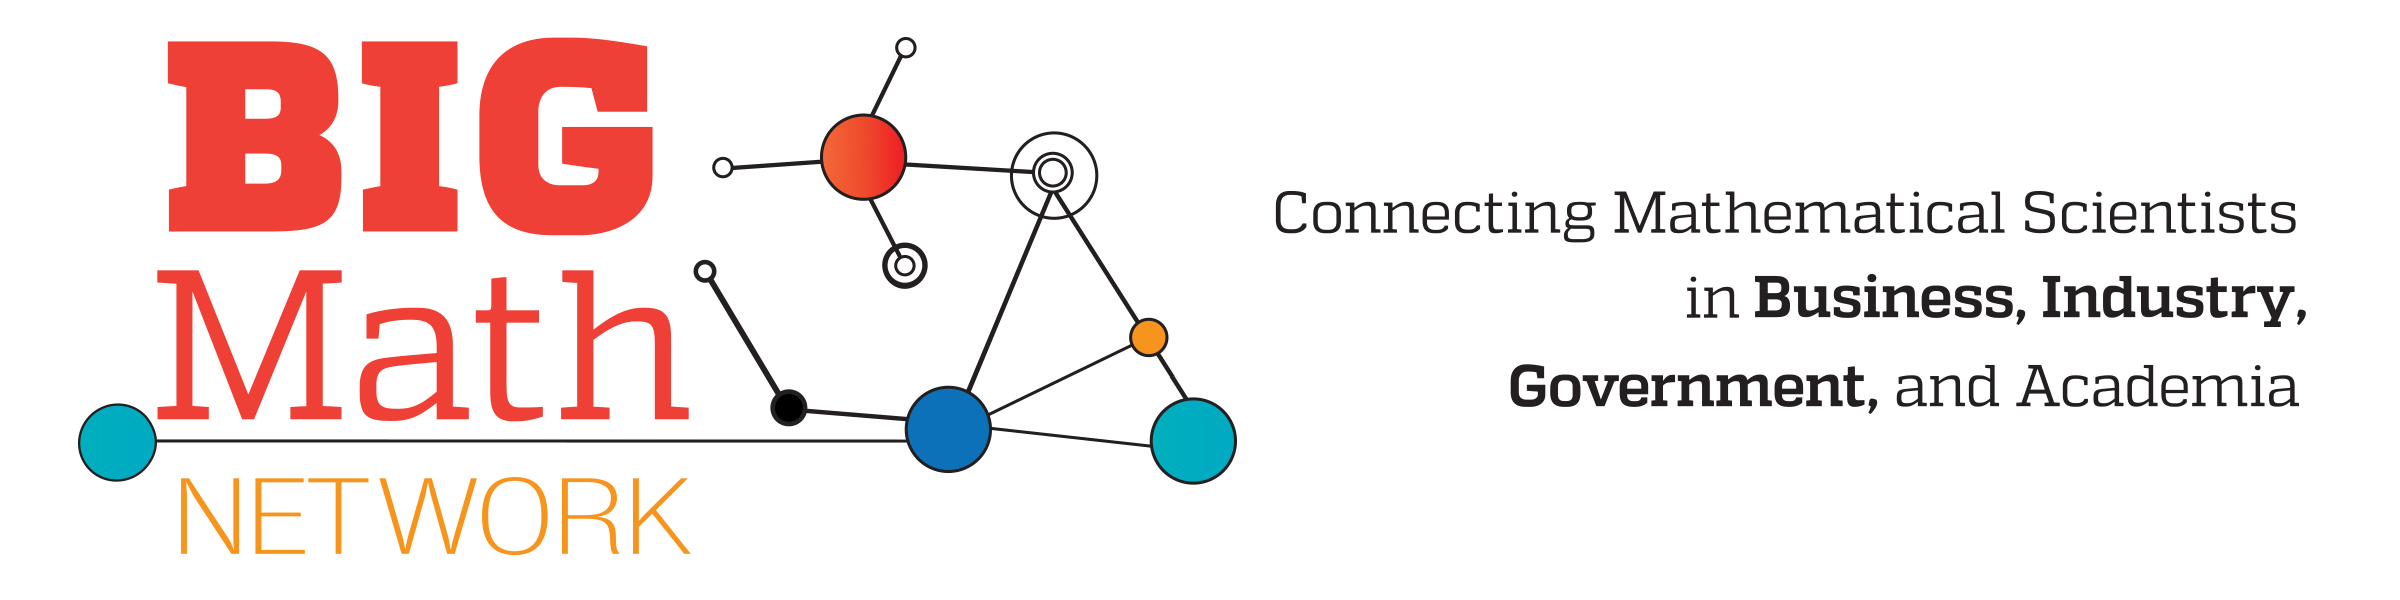 big math network connecting mathematical scientists in business big math network connecting mathematical scientists in business industry government and academia